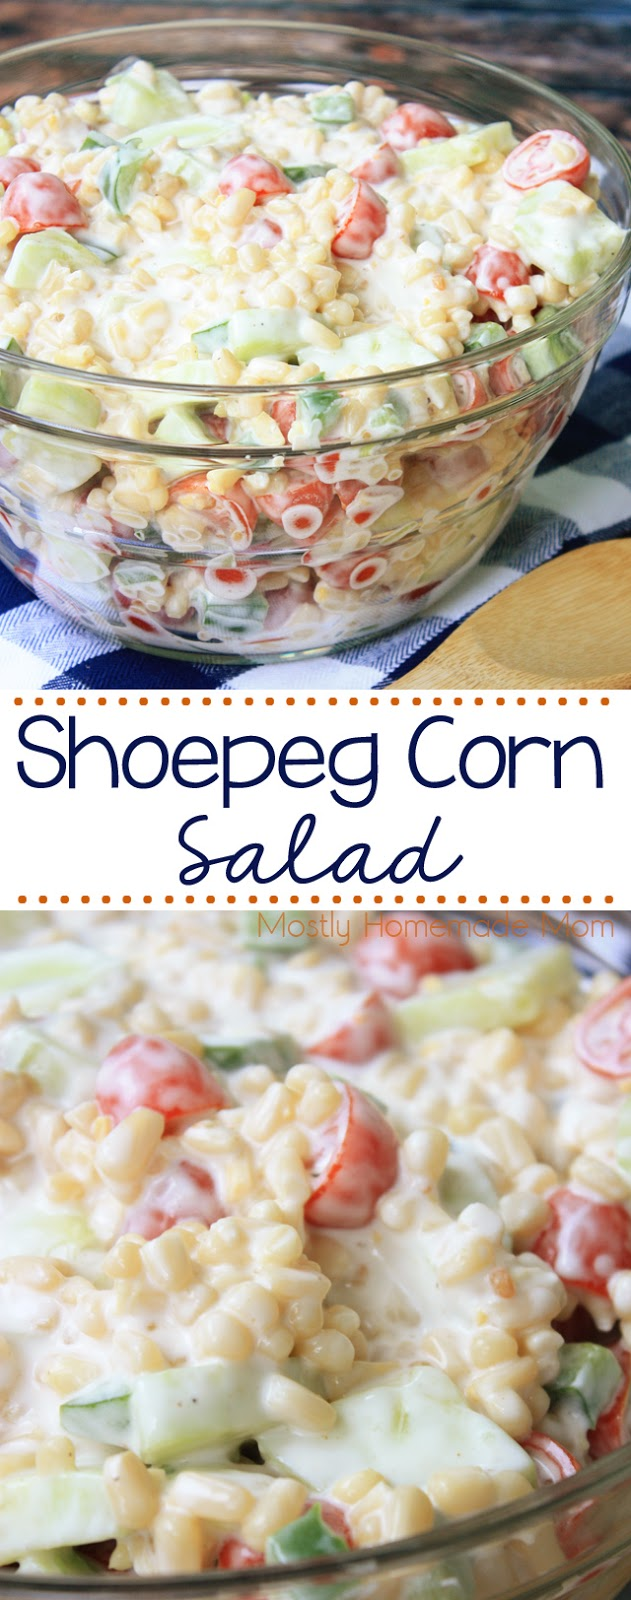 Shoepeg Corn Recipe